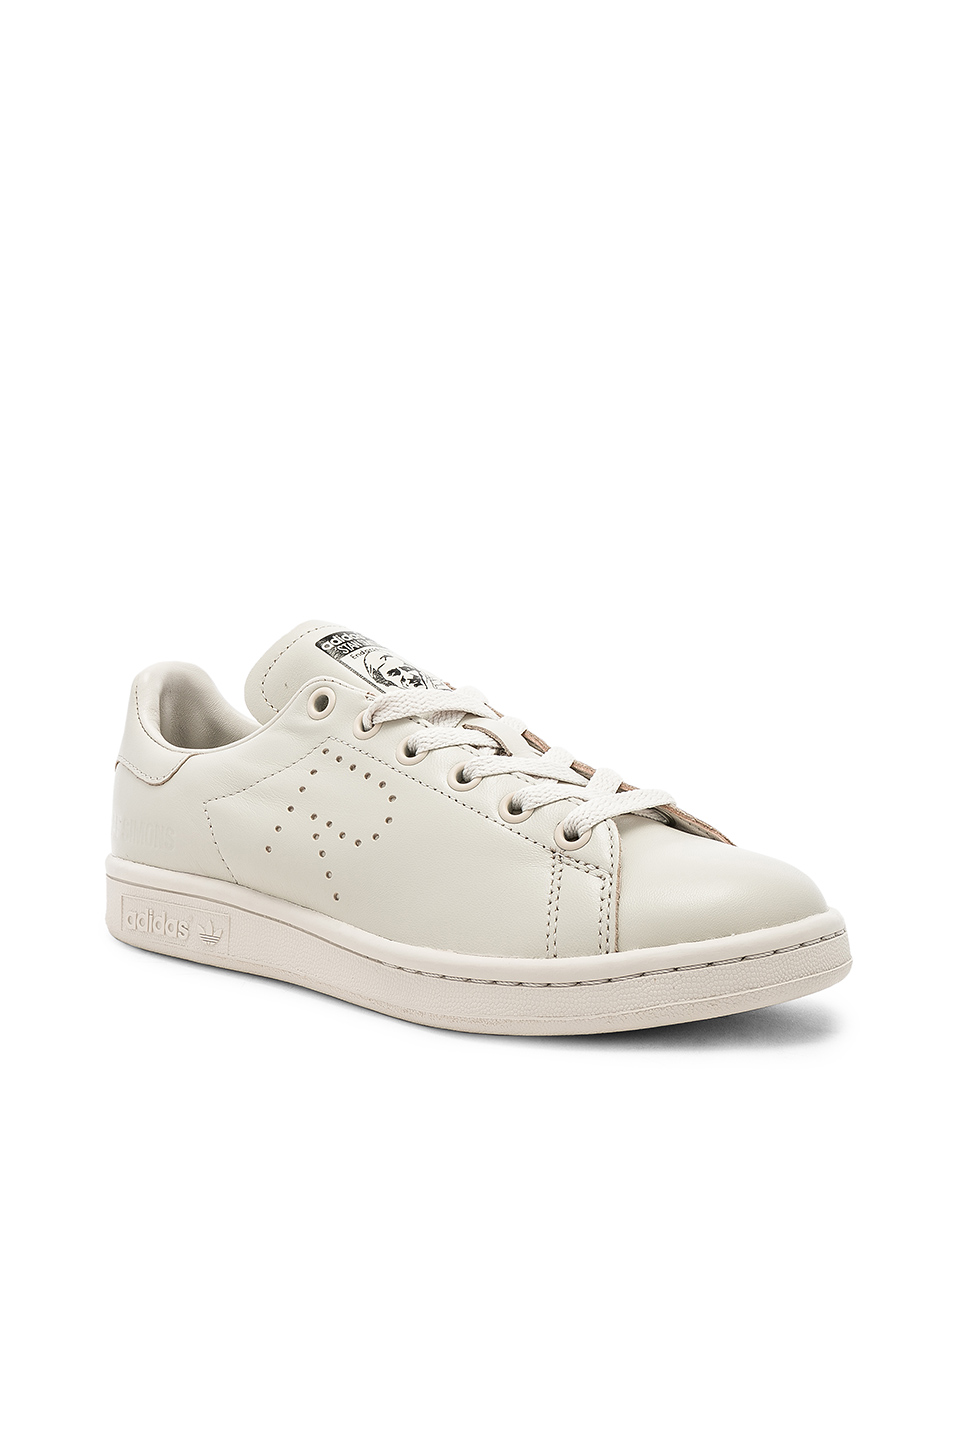 newest ca7db 68745 Stan Smith Sneaker, adidas by Raf Simons